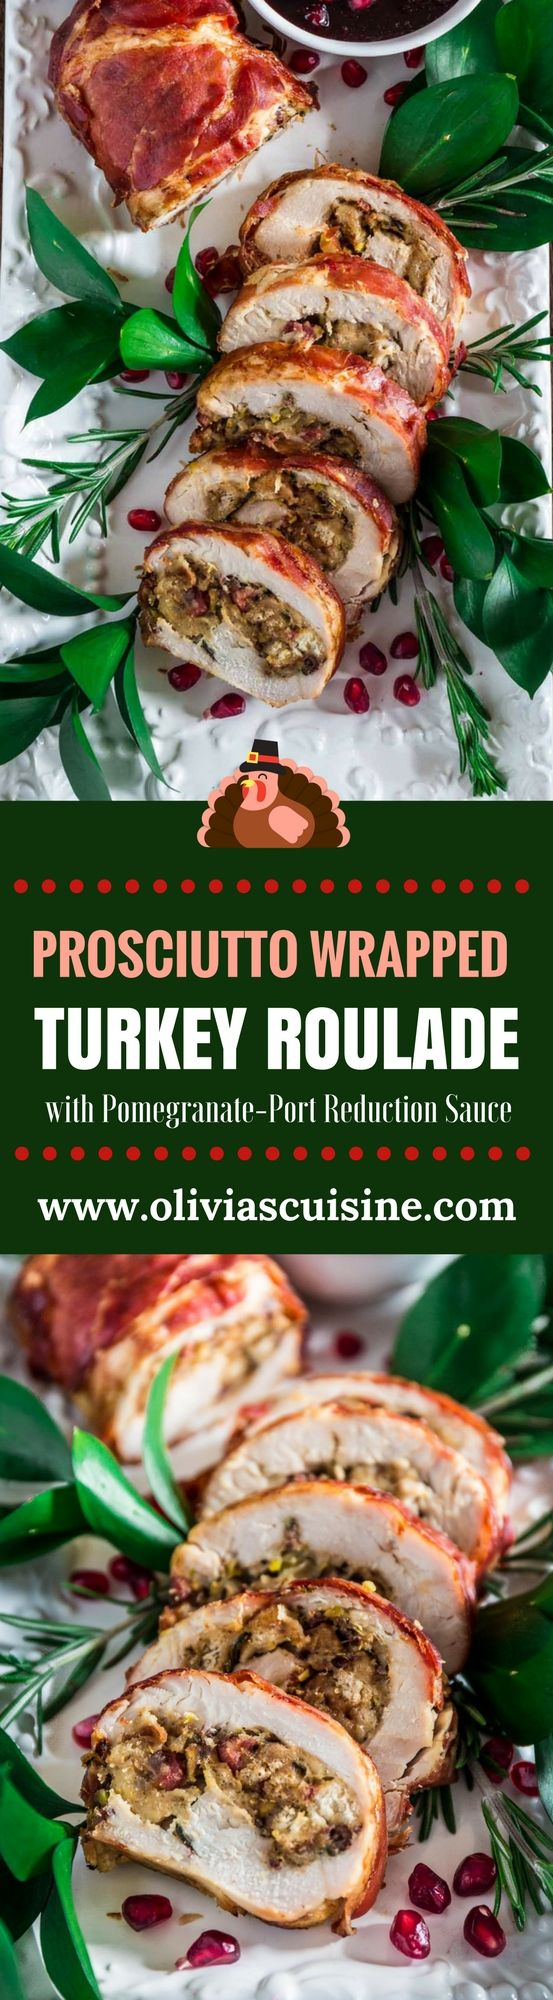 Prosciutto Wrapped Turkey Roulade with Pomegranate-Port Reduction Sauce   www.oliviascuisine.com   No time to roast a whole turkey? Knock the socks off your guests with this simple and quick to assemble turkey roulade. Moist, stuffed with pancetta, pistachio and cranberries, wrapped in Prosciutto di Parma and served with a lip-smacking pomegranate port reduction sauce. One bite and the holidays will never be the same again! (Sponsored by @parmaham.)